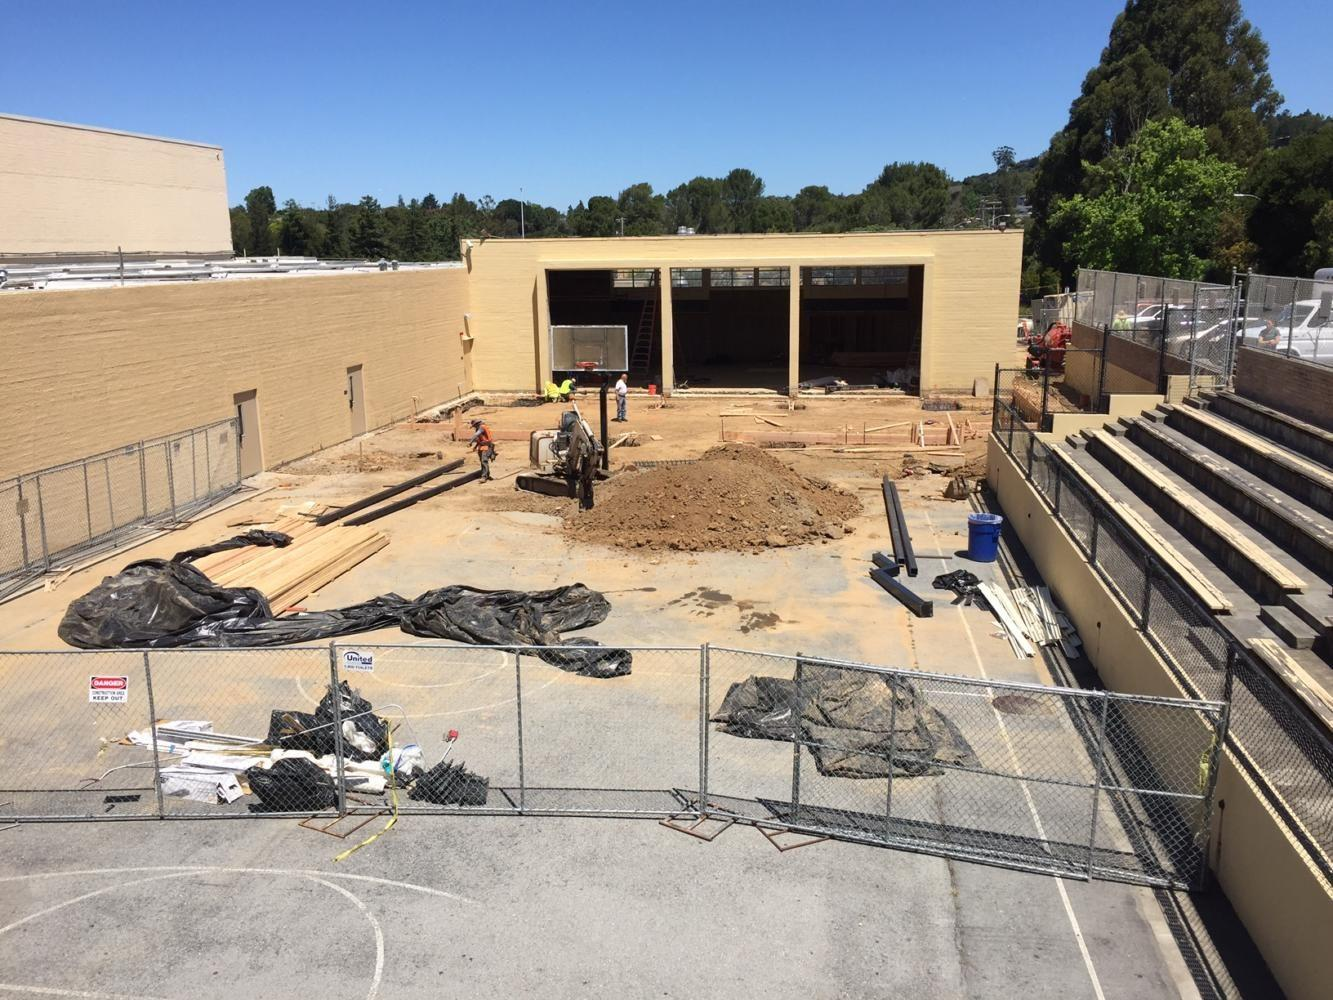 The weight room is being torn down in order to prepare it for the new additions.